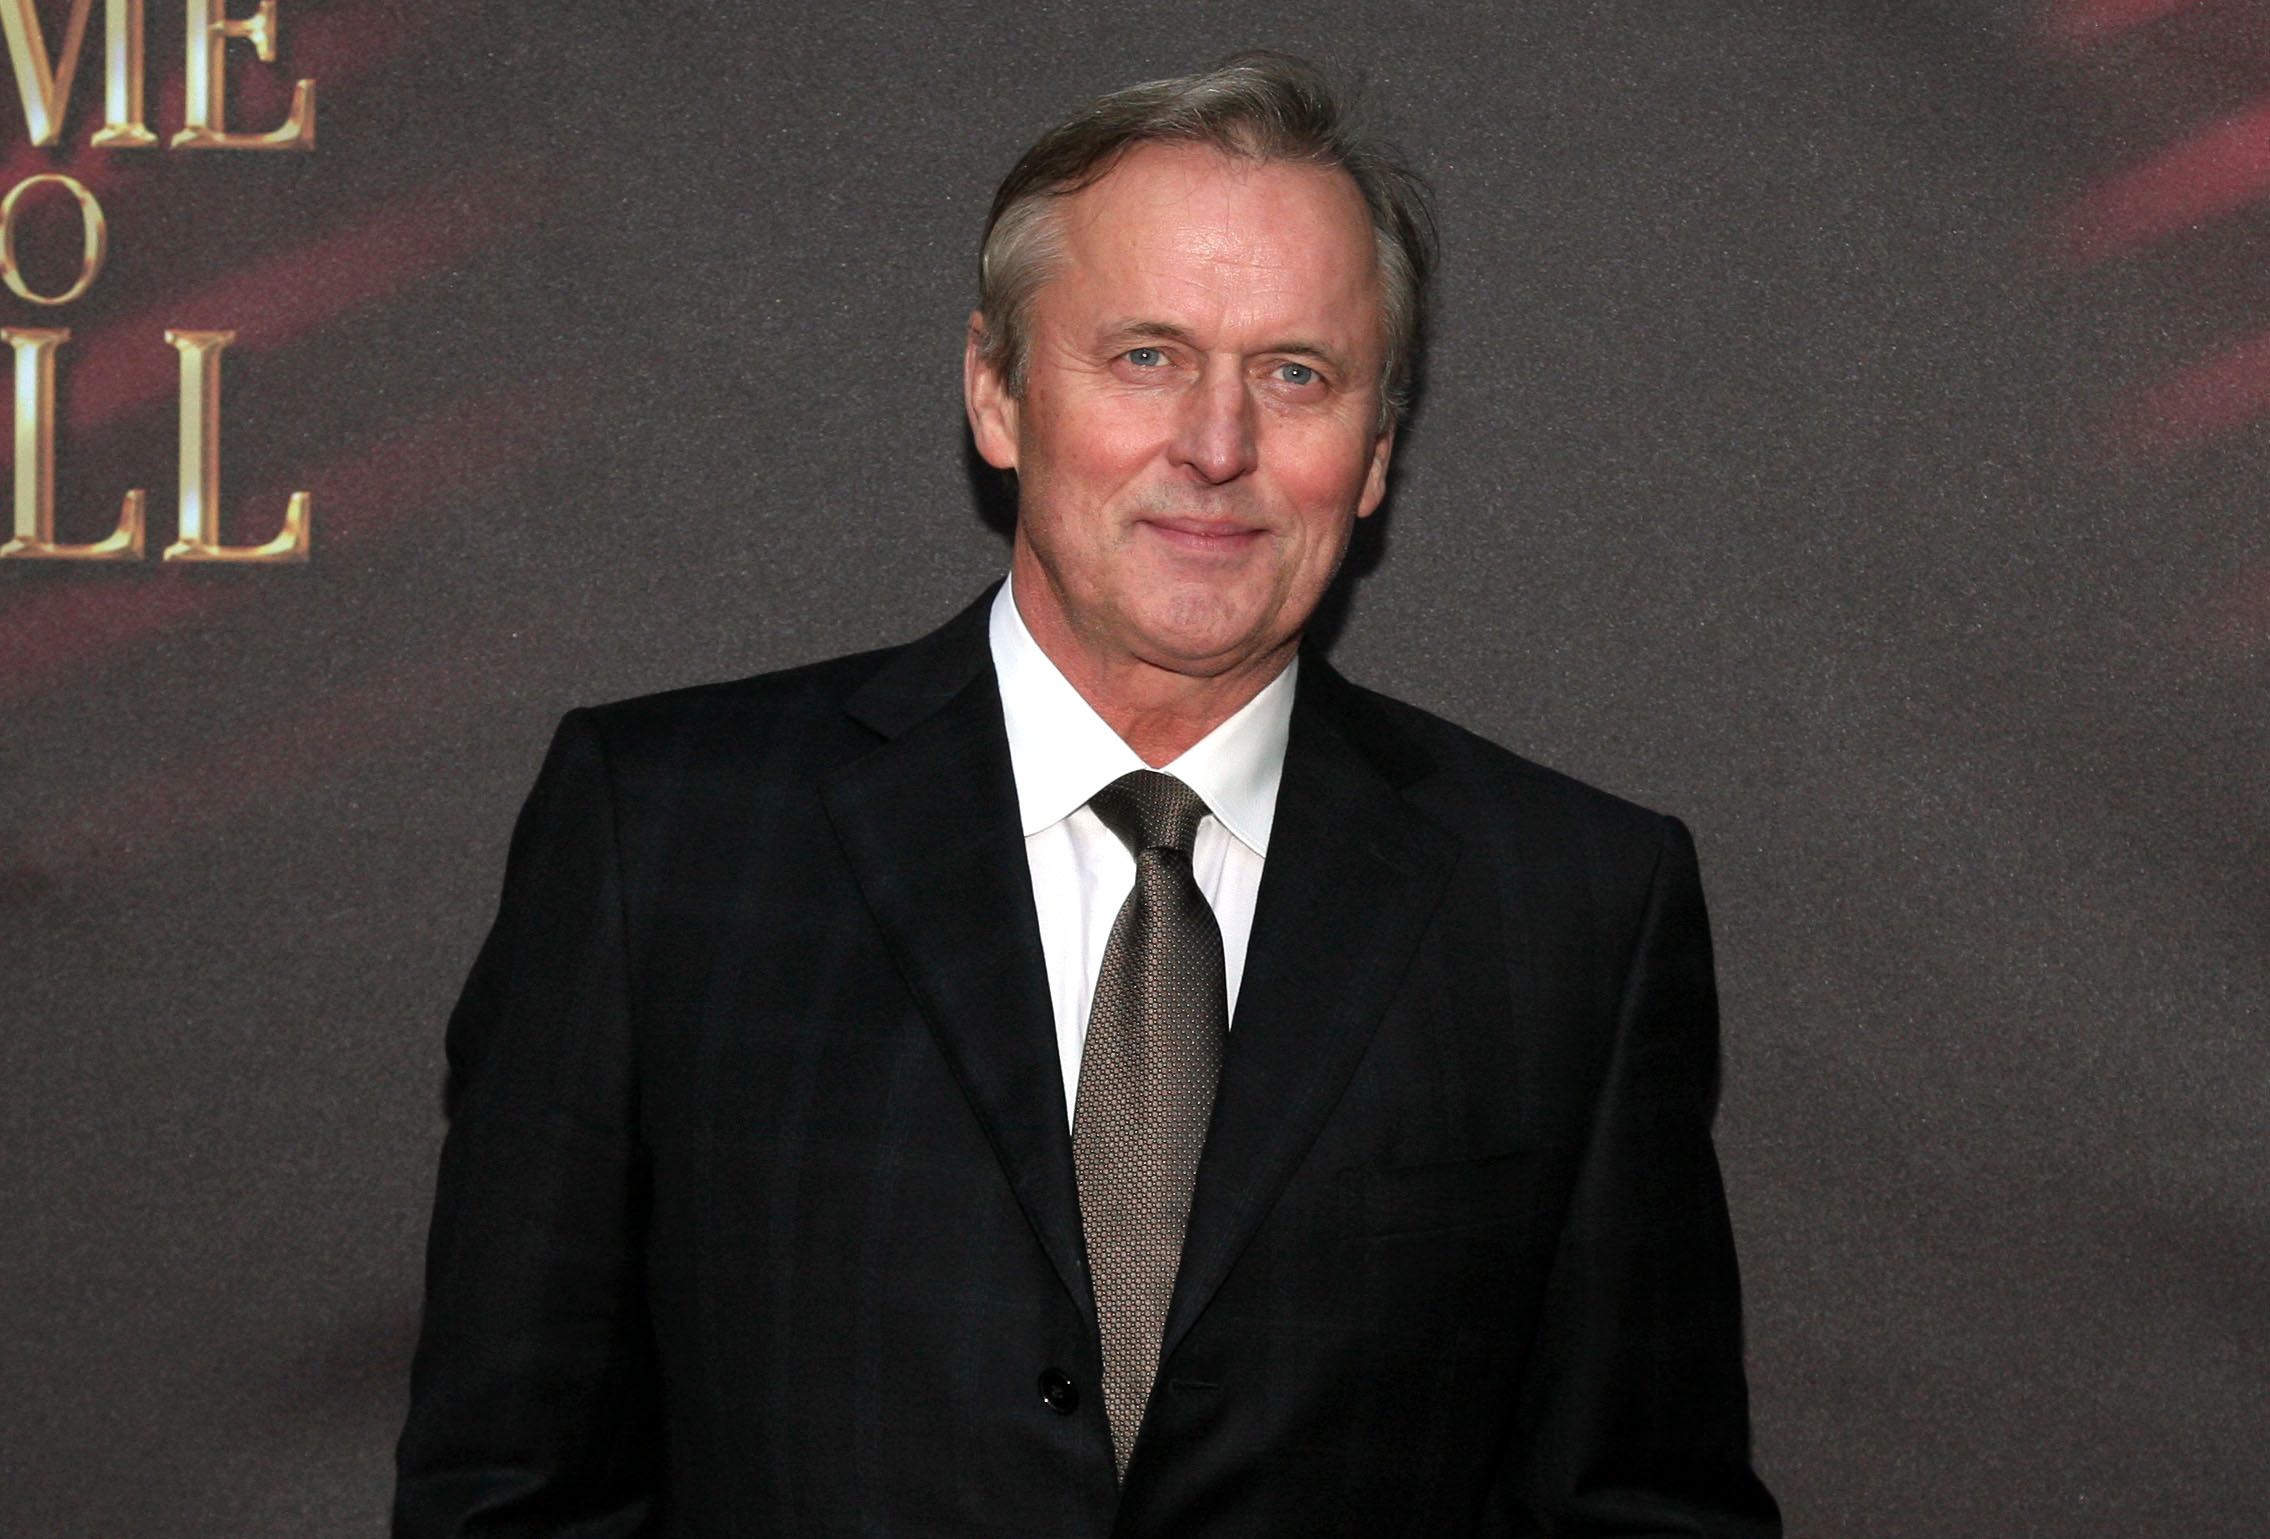 A Conversation With John Grisham